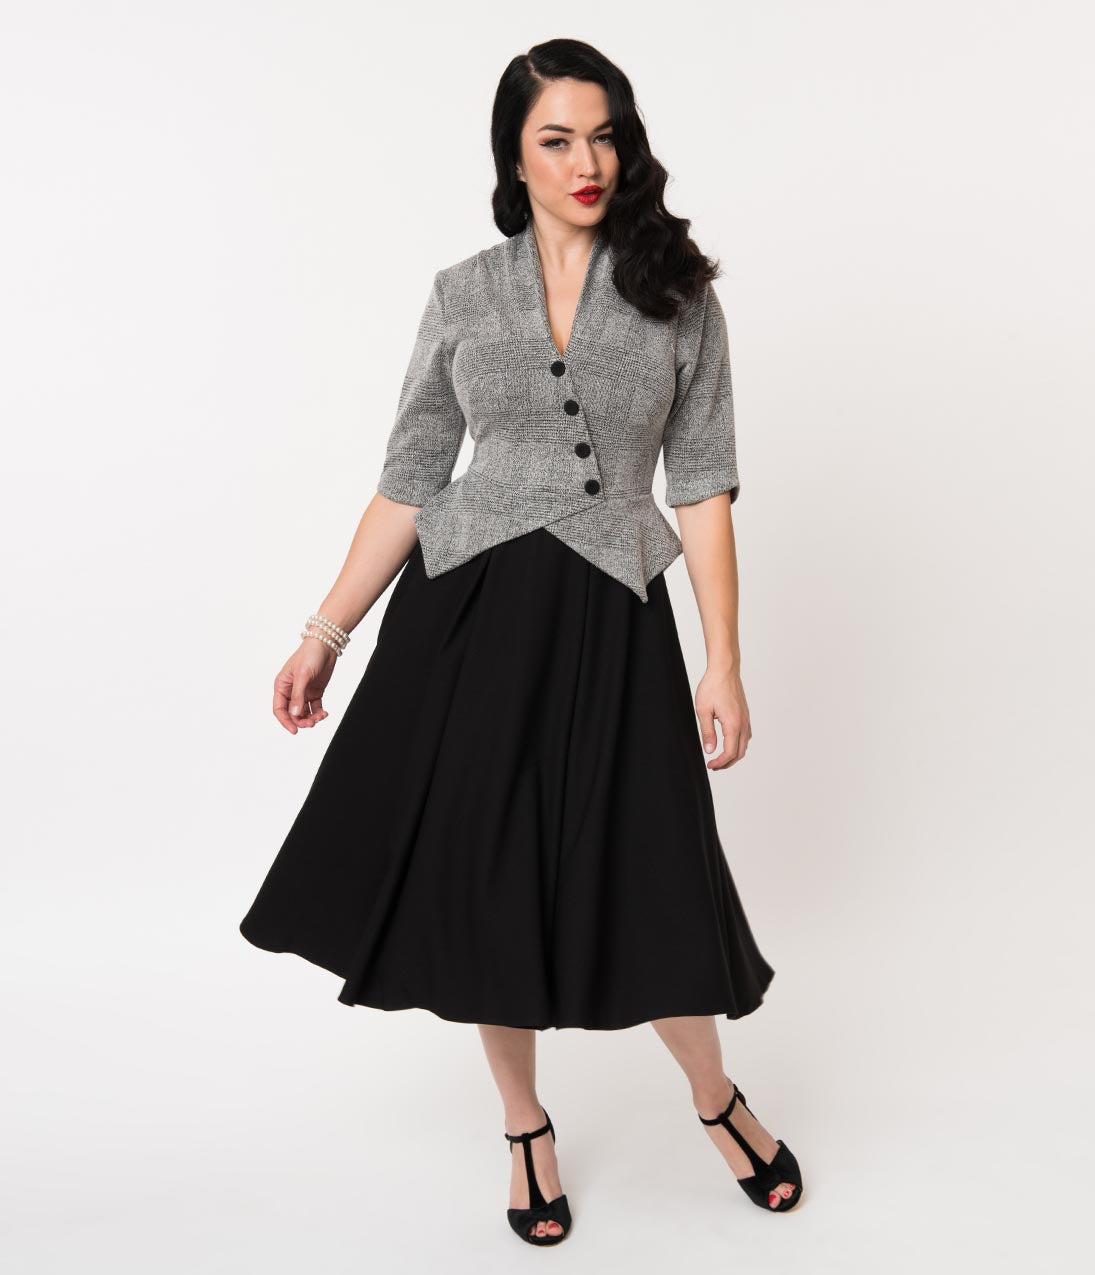 1950s Dresses, 50s Dresses | 1950s Style Dresses Miss Candyfloss 1950S Black  Grey Check Delphine Suit Swing Dress $138.00 AT vintagedancer.com